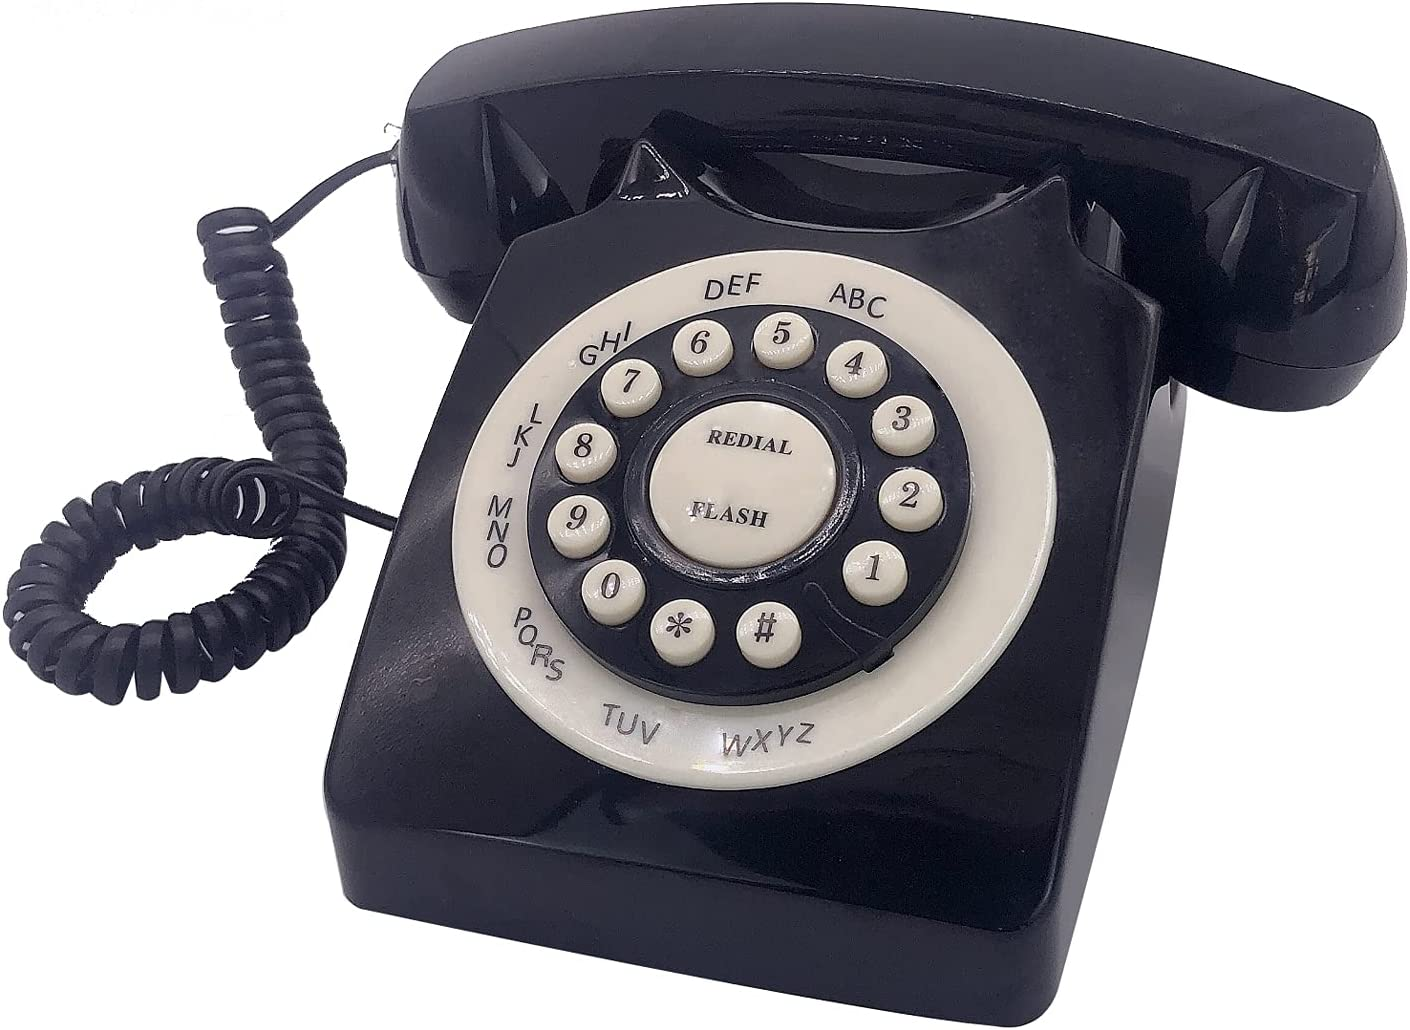 Beneno Black Retro Landline Telephone Classic Rotary Design Old Fashioned Corded Desk Phone with Ringer for Home and Office, Basic 80s Phones for Senior People